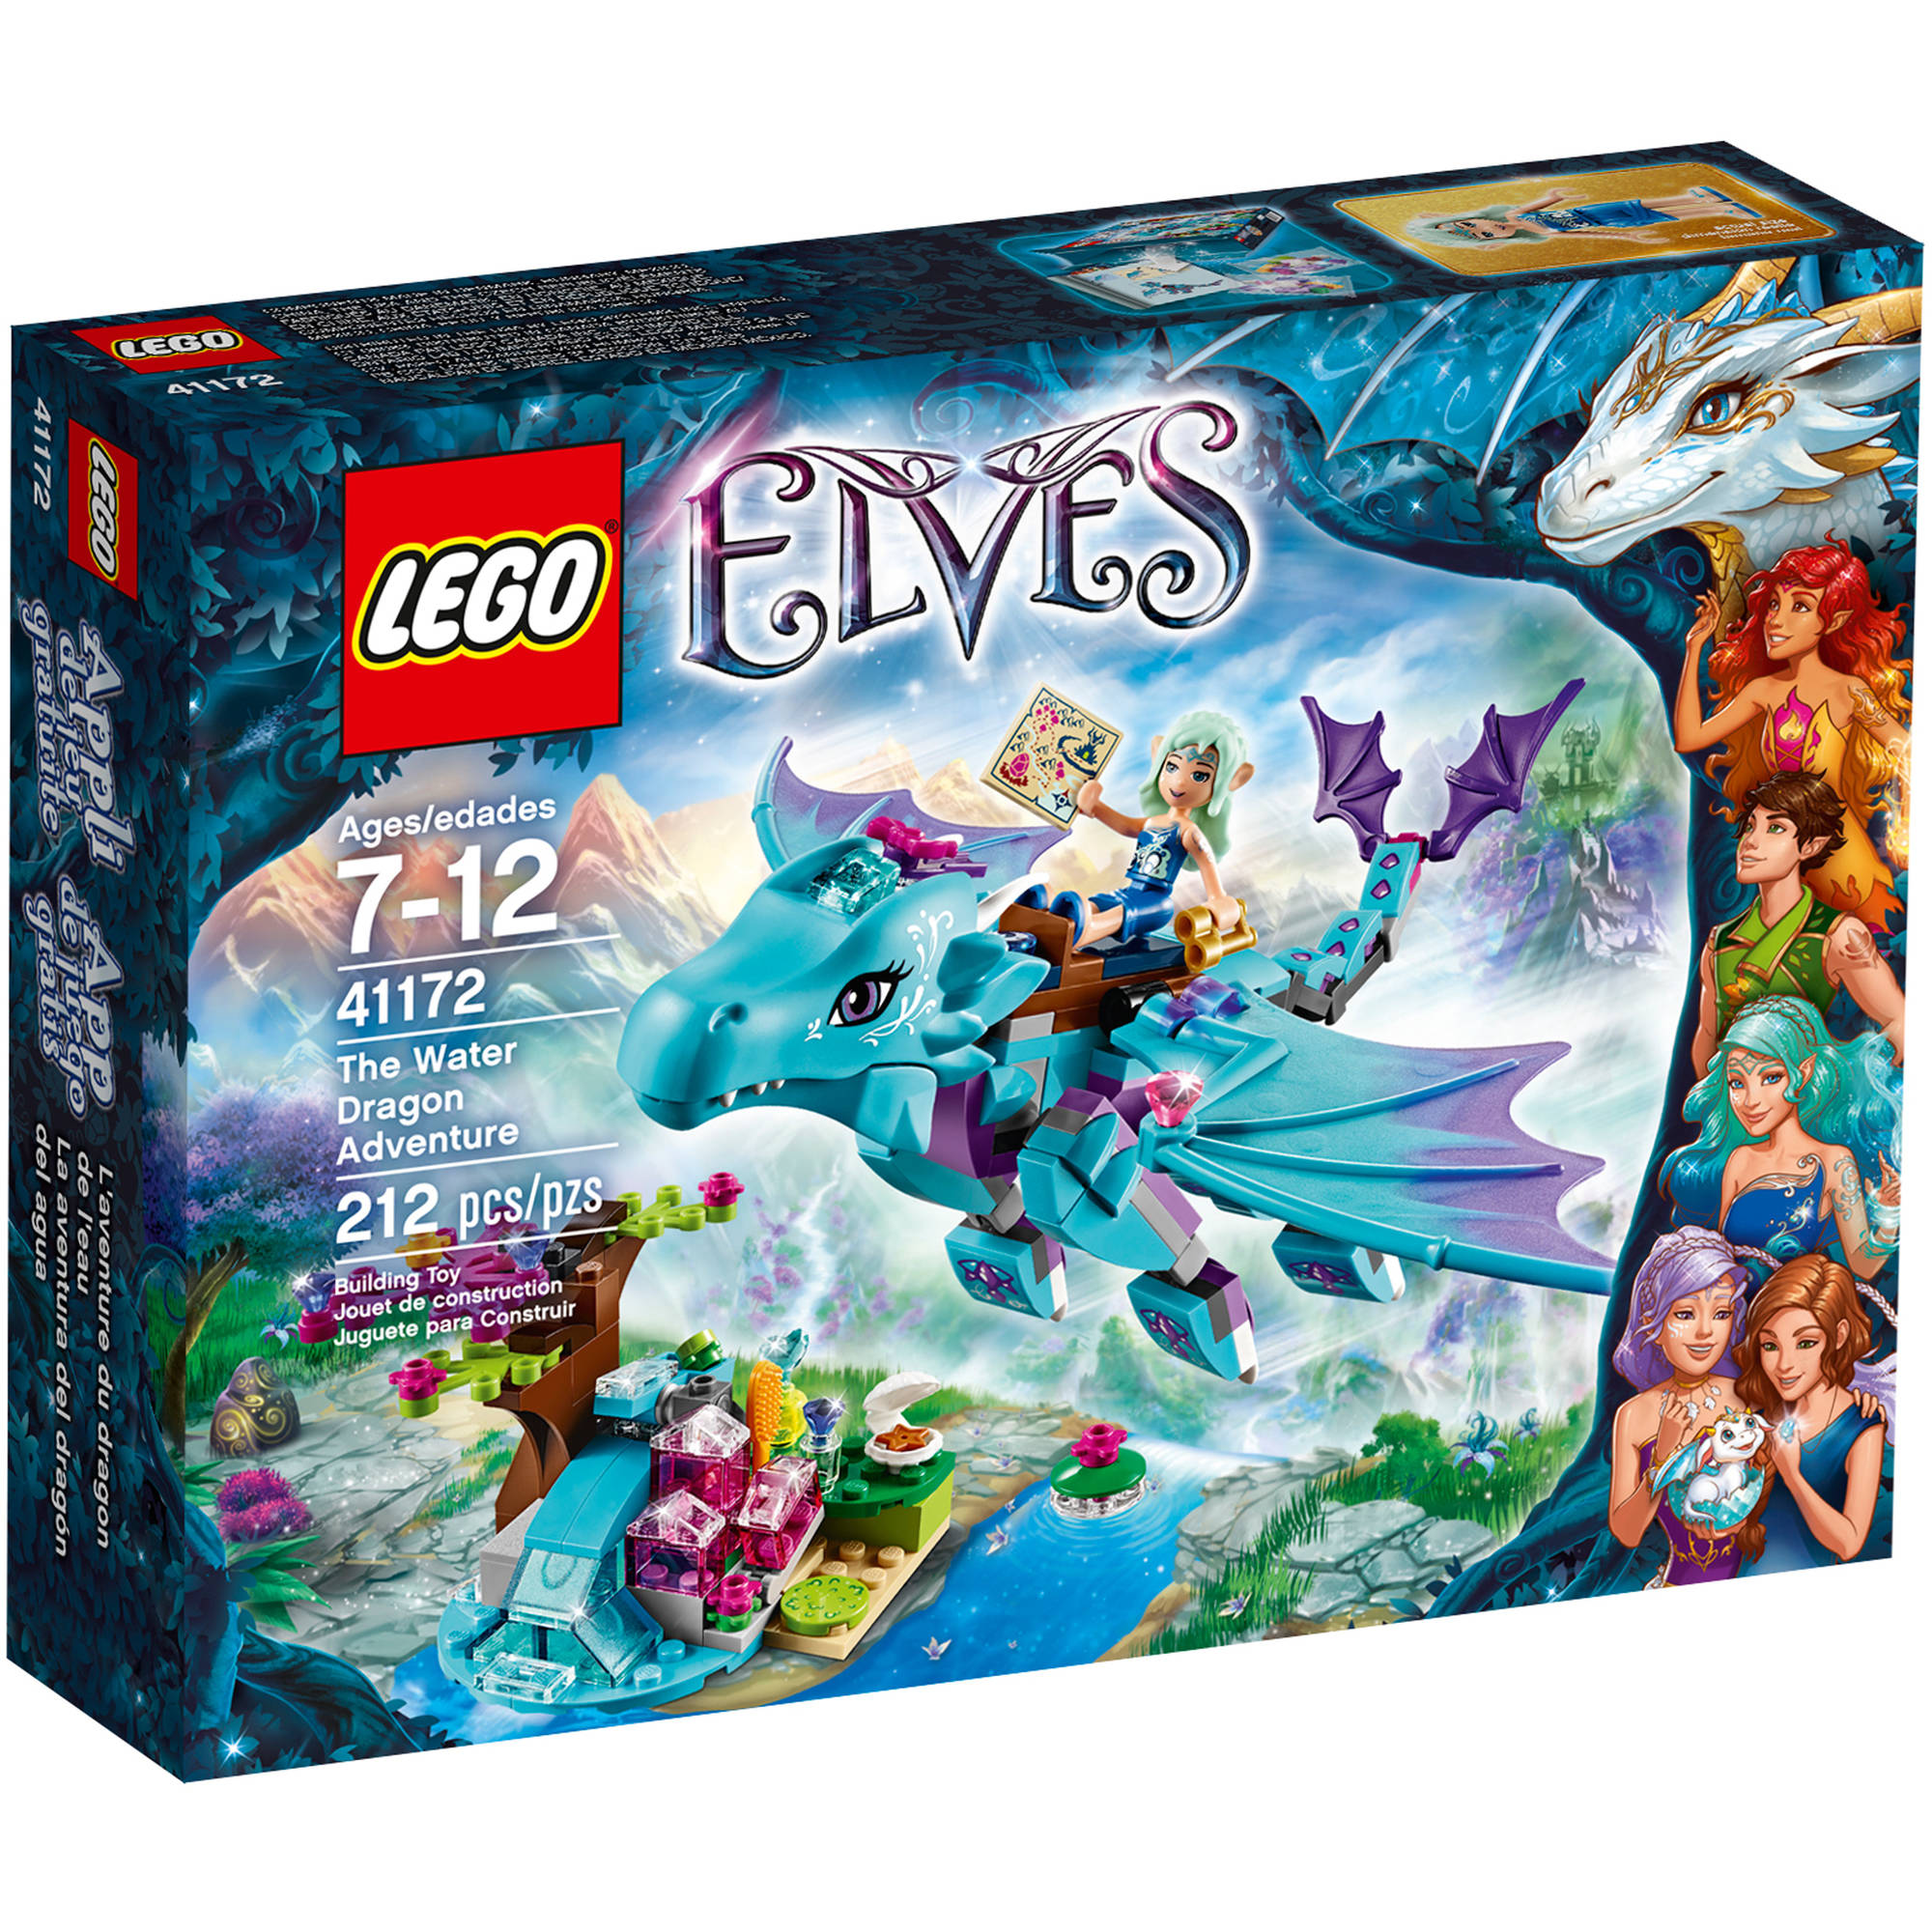 LEGO Elves The Water Dragon Adventure Walmartcom - 16 imaginative lego ads that celebrate the power of fantasy 2